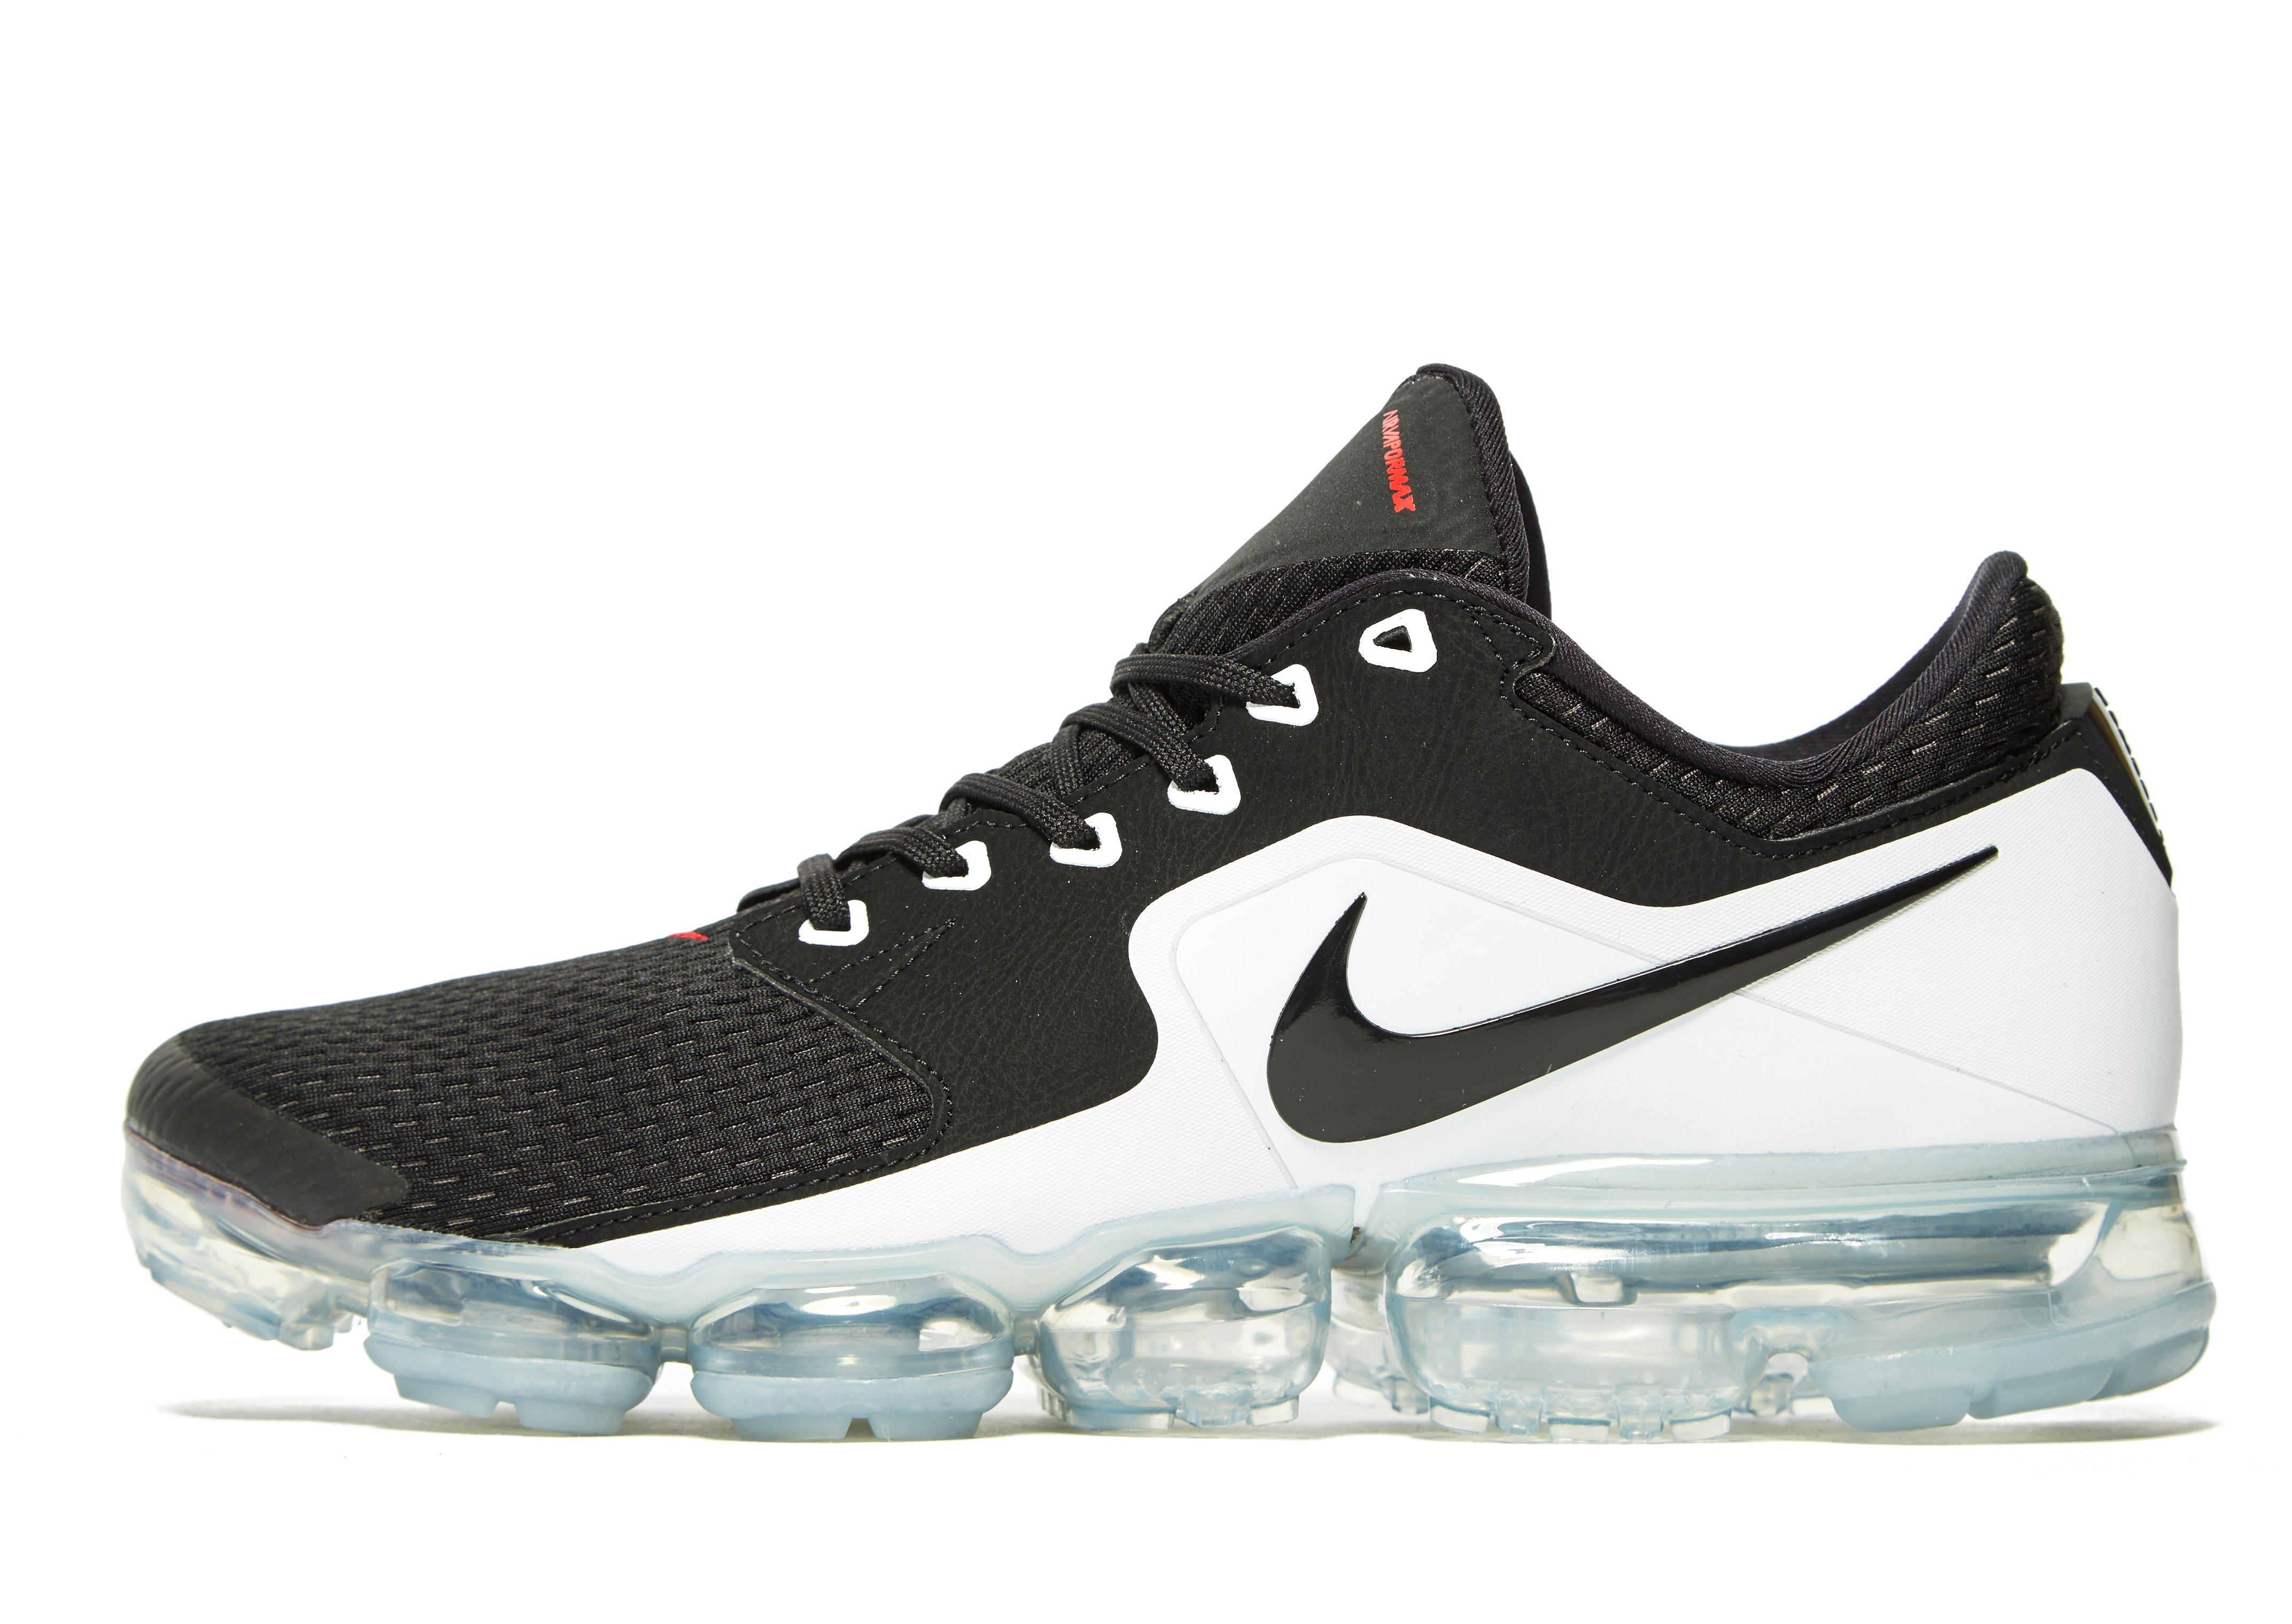 Nike Air Vapormax Jd Sports